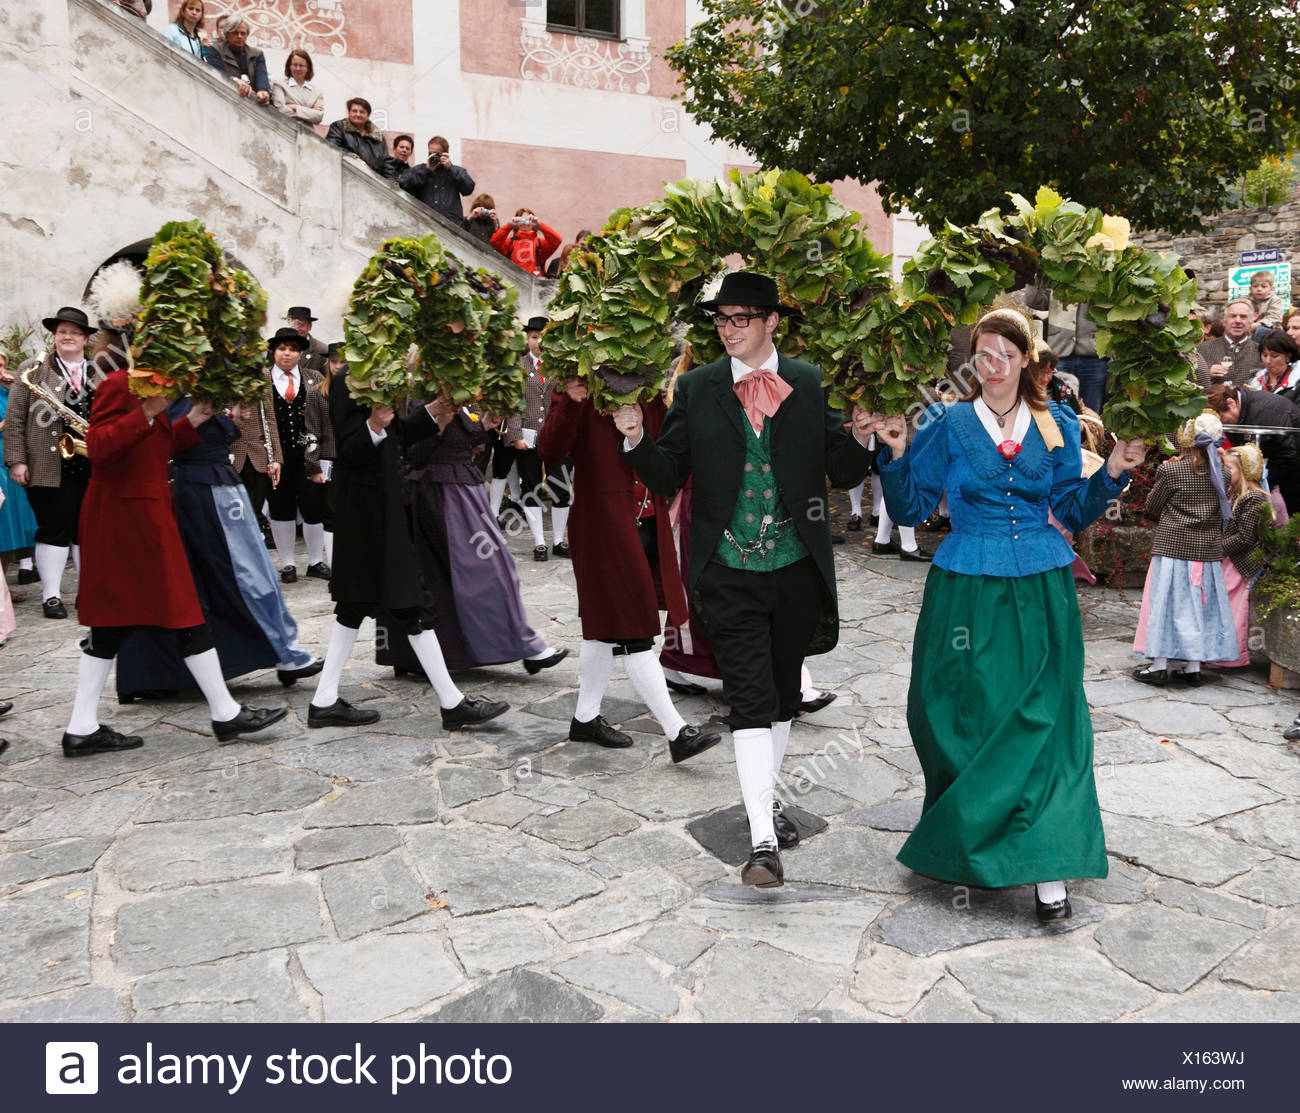 Folk dancers at the Thanksgiving Festival, Spitz, Wachau, Waldviertel, Forest Quarter, Lower Austria, Austria, Europe - Stock Image